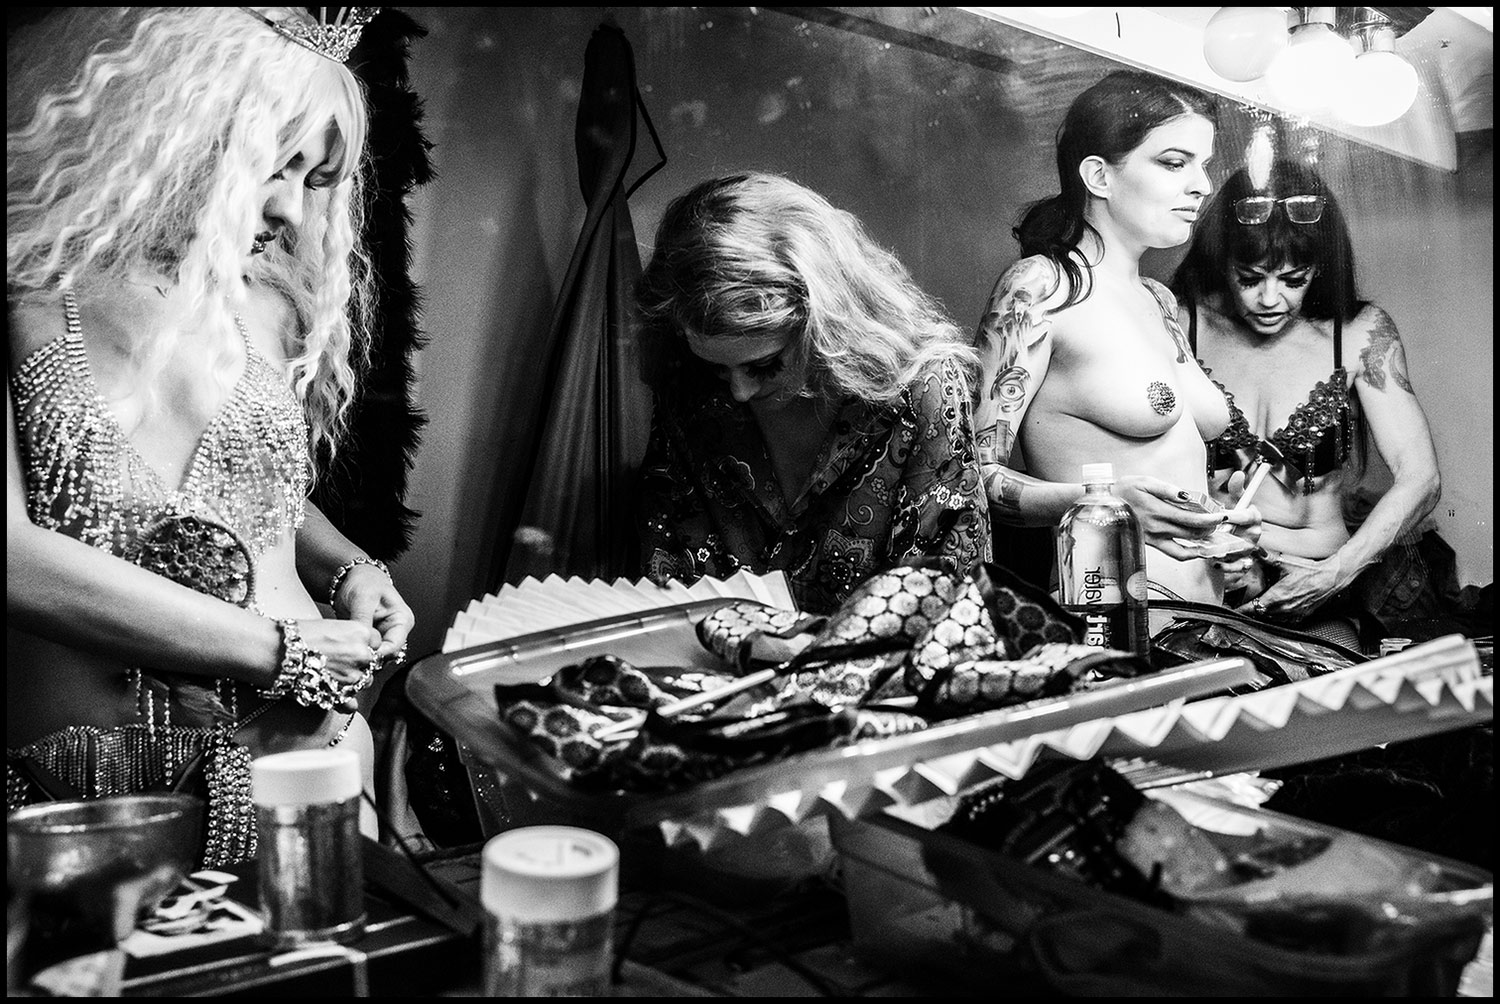 Nostalgie D'Une Époque Perdue  (Los Angeles, CA) 2018 // Burlesque performers (Lt to Rt: Vanessa Burgundy, Trixie Little, Kira Von Sutra, and Princess Farhana) doll themselves up in the dressing room before the show.